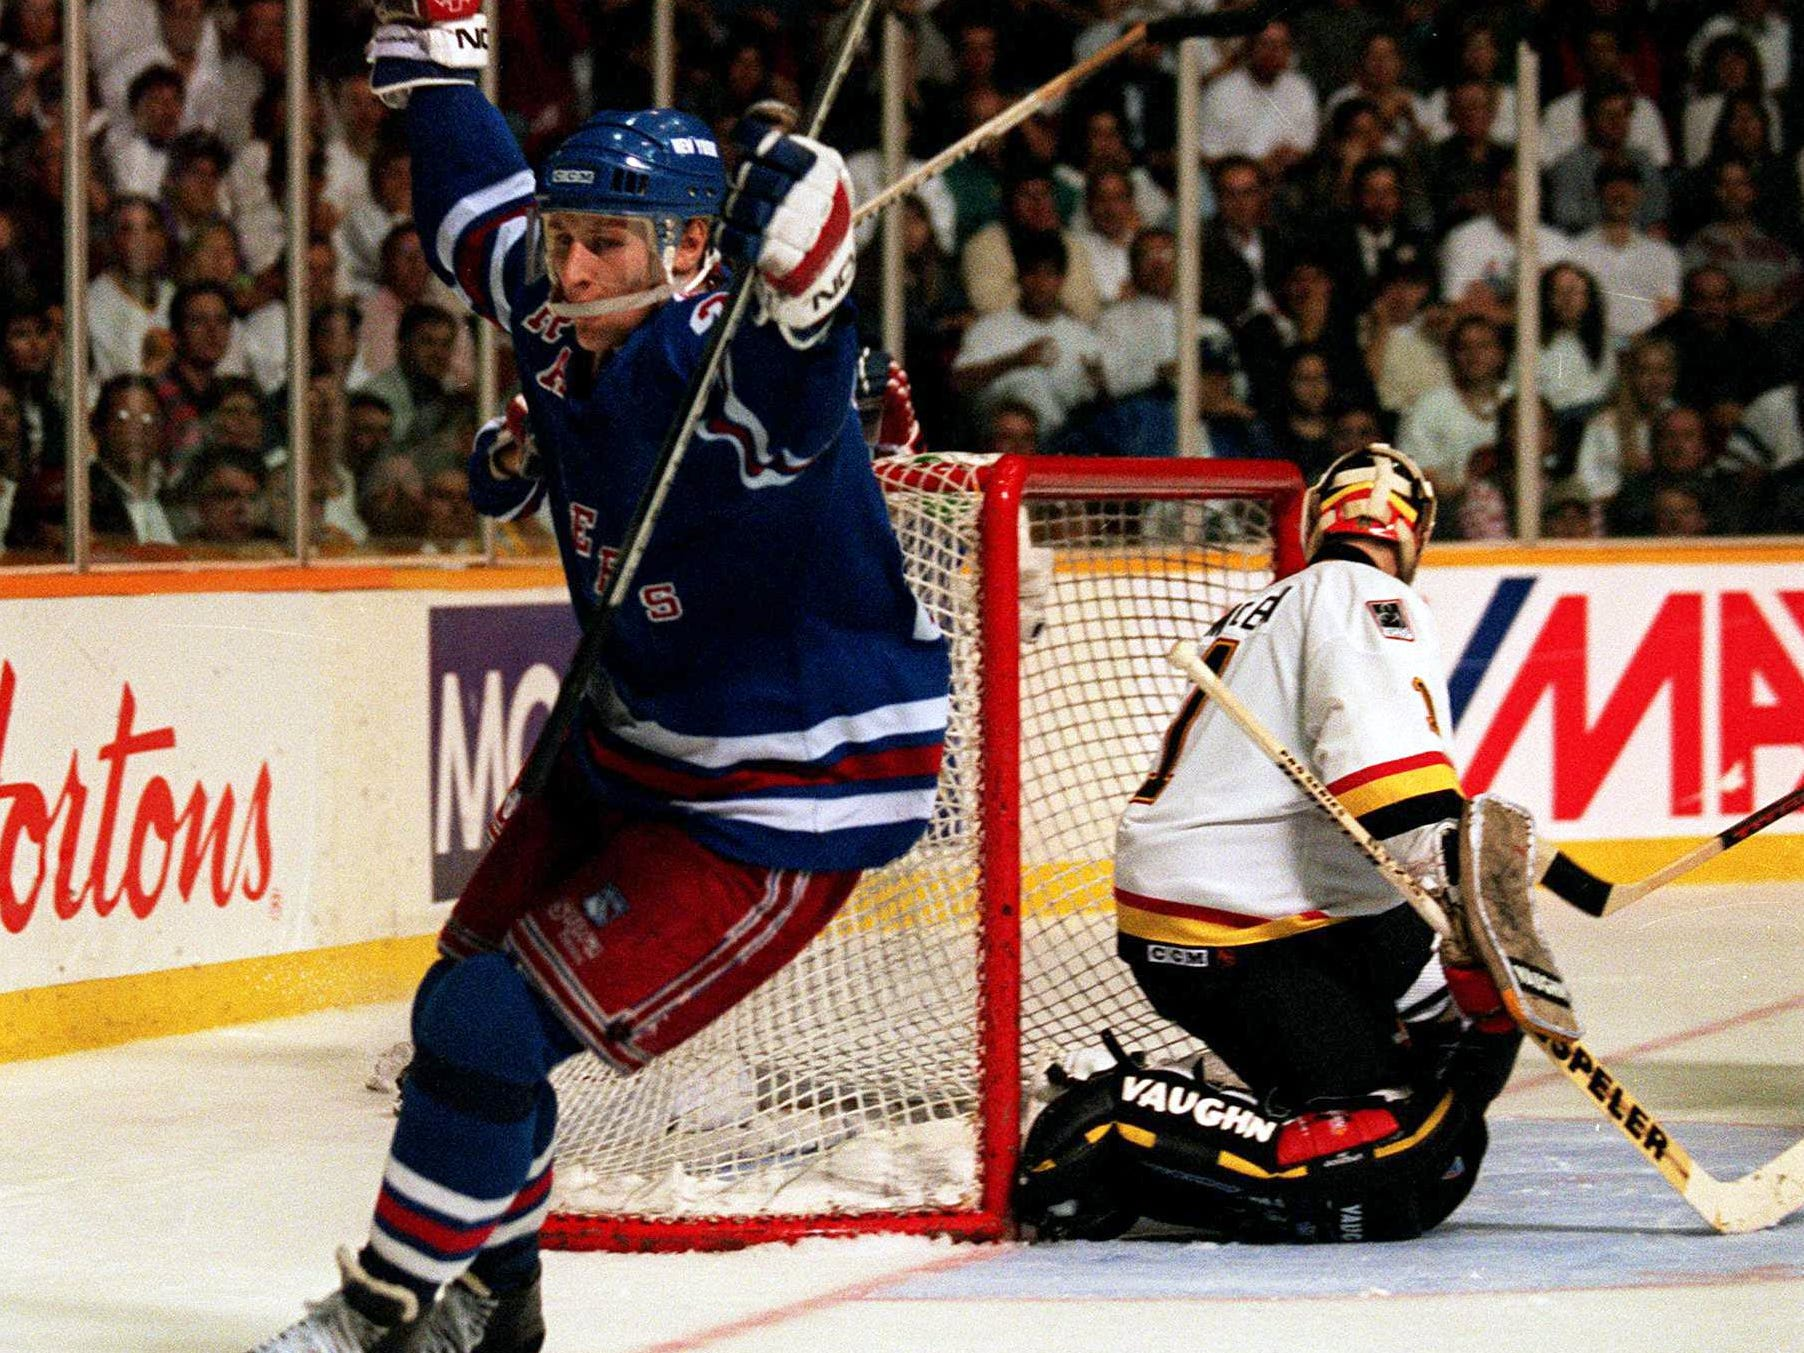 7 Jun 1994: RANGERS FORWARD ALEXEI KOVALEV CELEBRATES AFTER SCORING THE WINNING GOAL TONIGHT AGAINST CANUCKS GOALTENDER KIRK MCLEAN DURING THE THIRD PERIOD OF GAME FOUR OF THE STANLEY CUP FINALS IN VANCOUVER, BRITISH COLUMBIA. THE RANGERS WENT ON TO WIN,